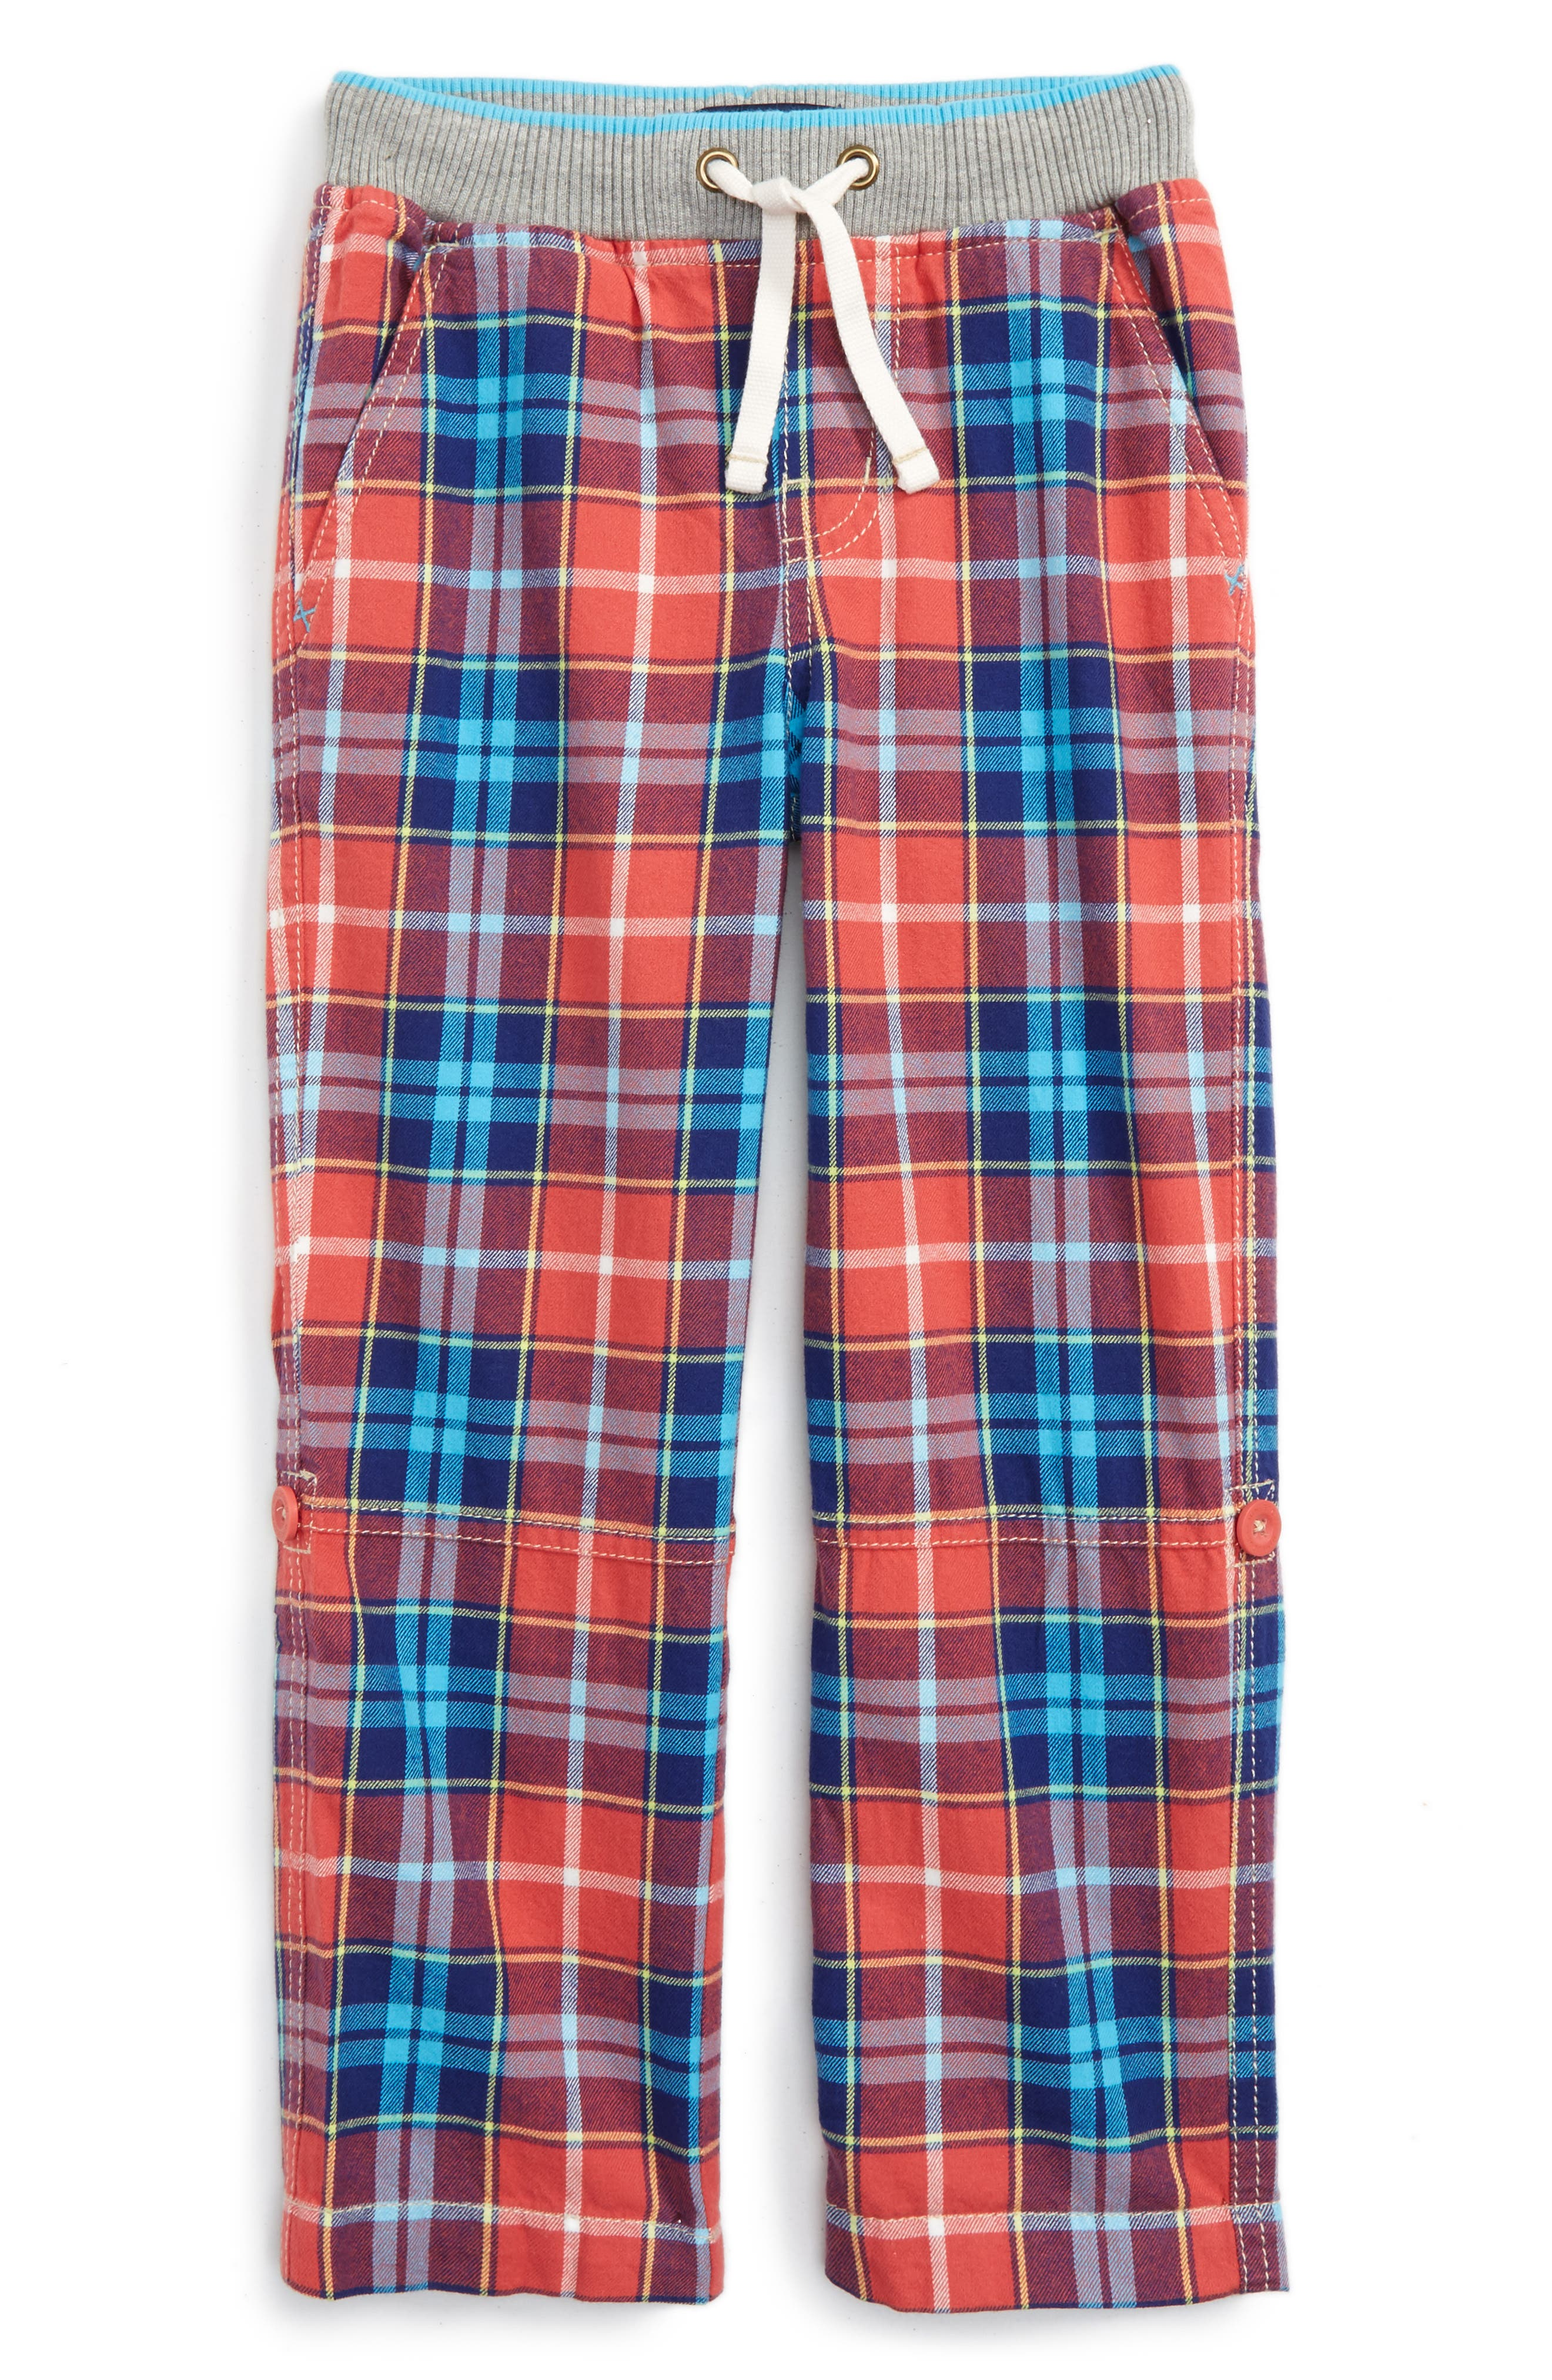 Alternate Image 1 Selected - Mini Boden Surf Roll-Up Pants (Toddler Boys, Little Boys & Big Boys)